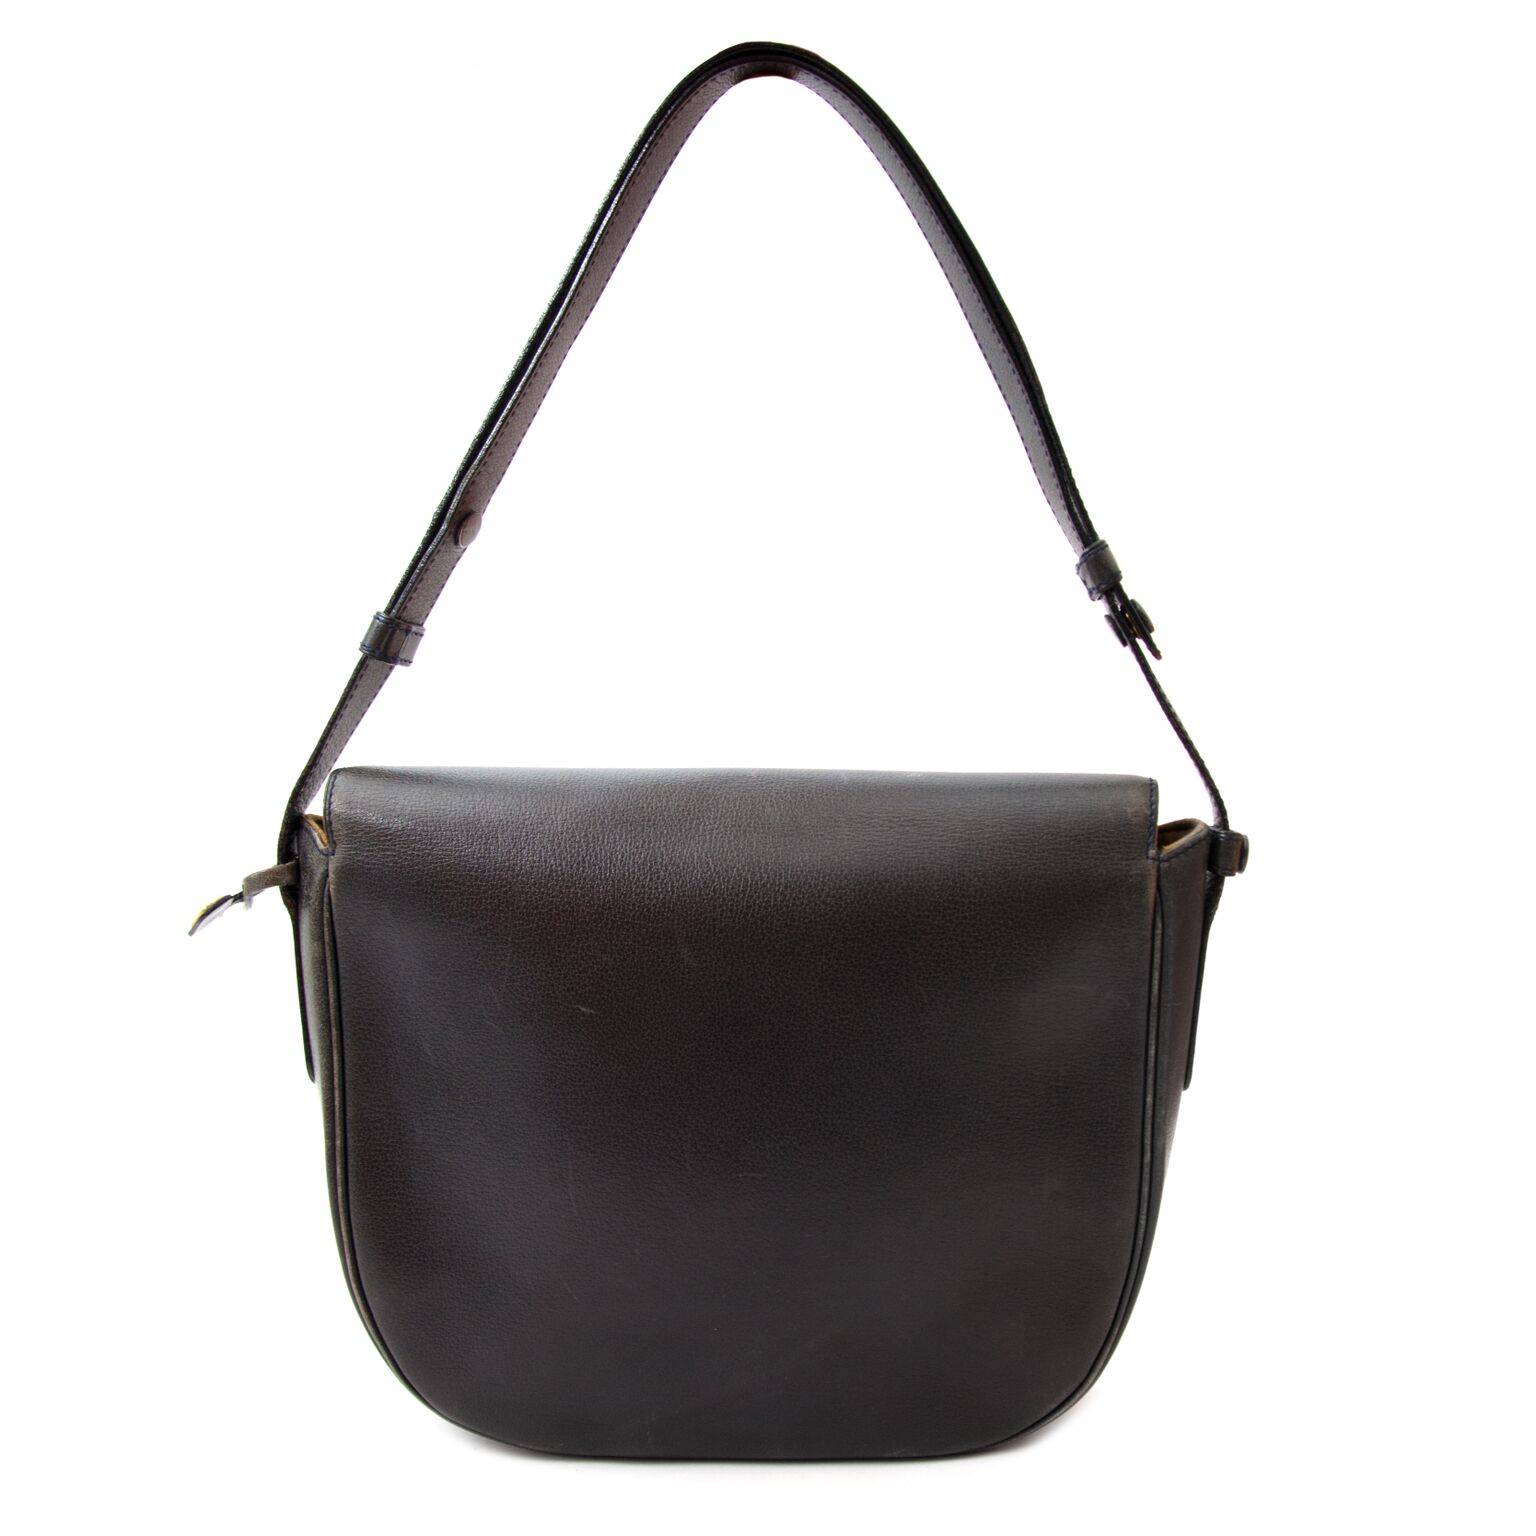 Beautiful shoulder bag from Delvaux on labellov.com